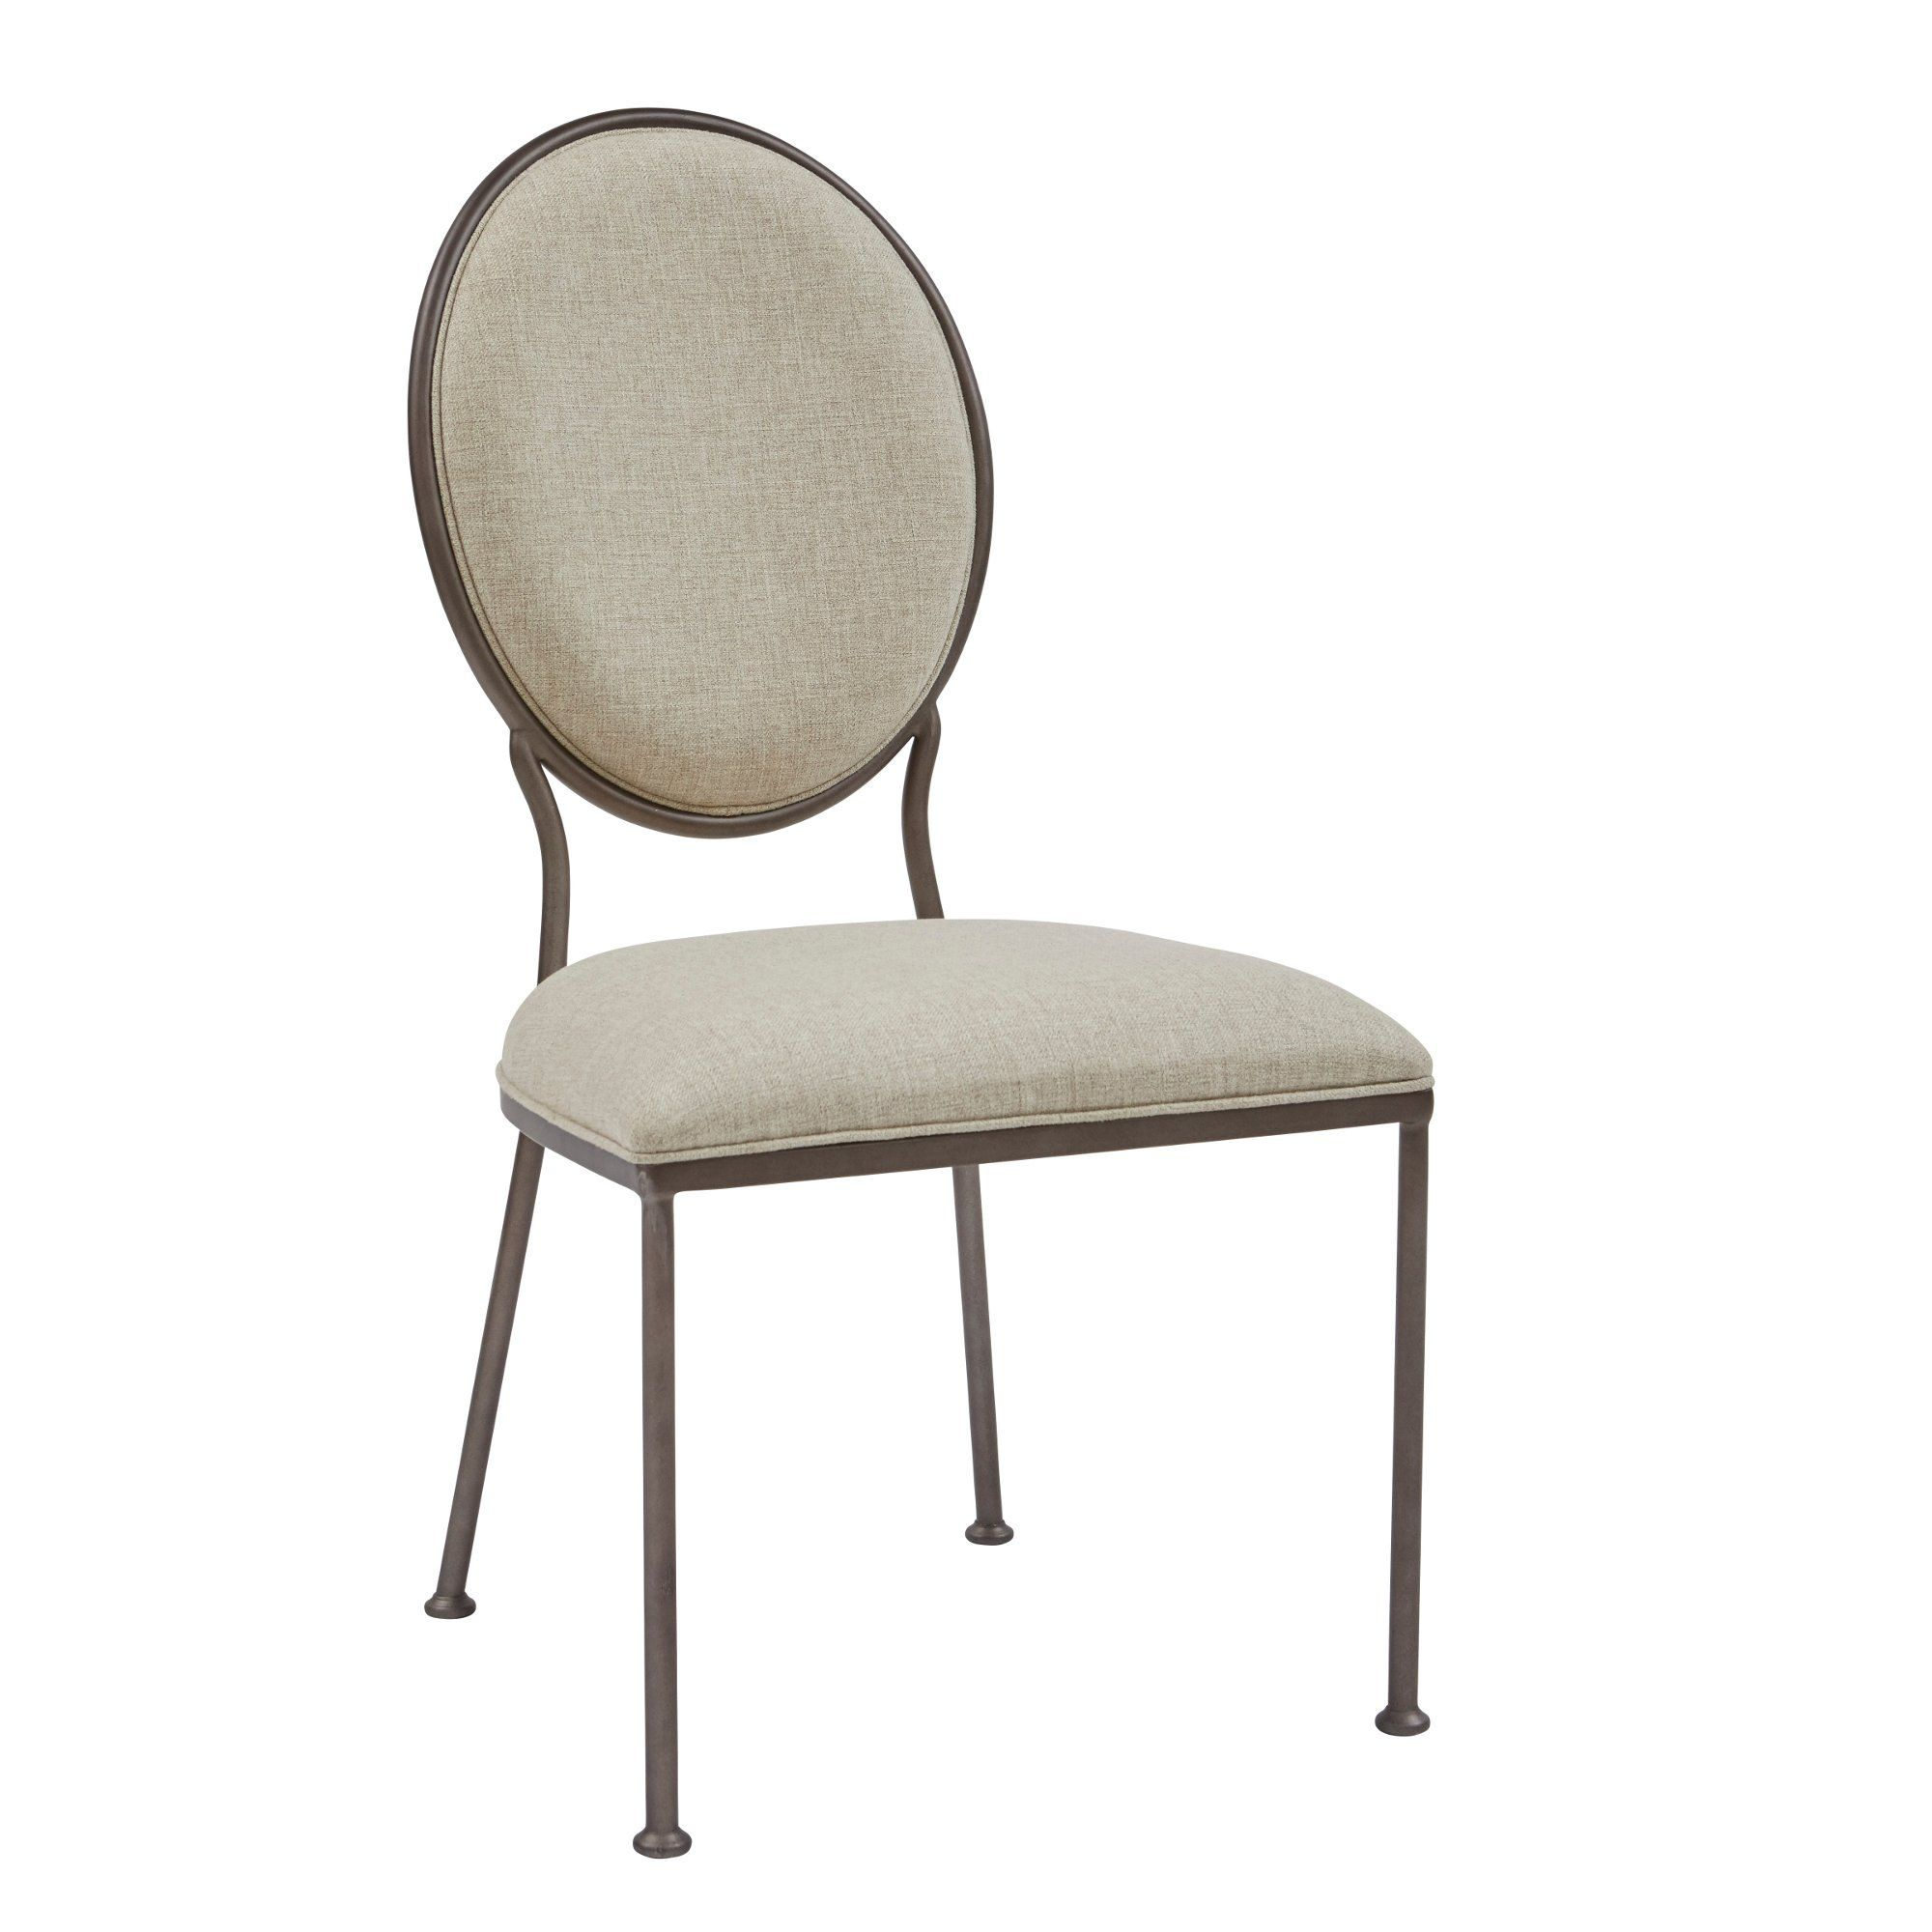 Contemporary Beige Metal Upholstered Dining Room Chair Modern